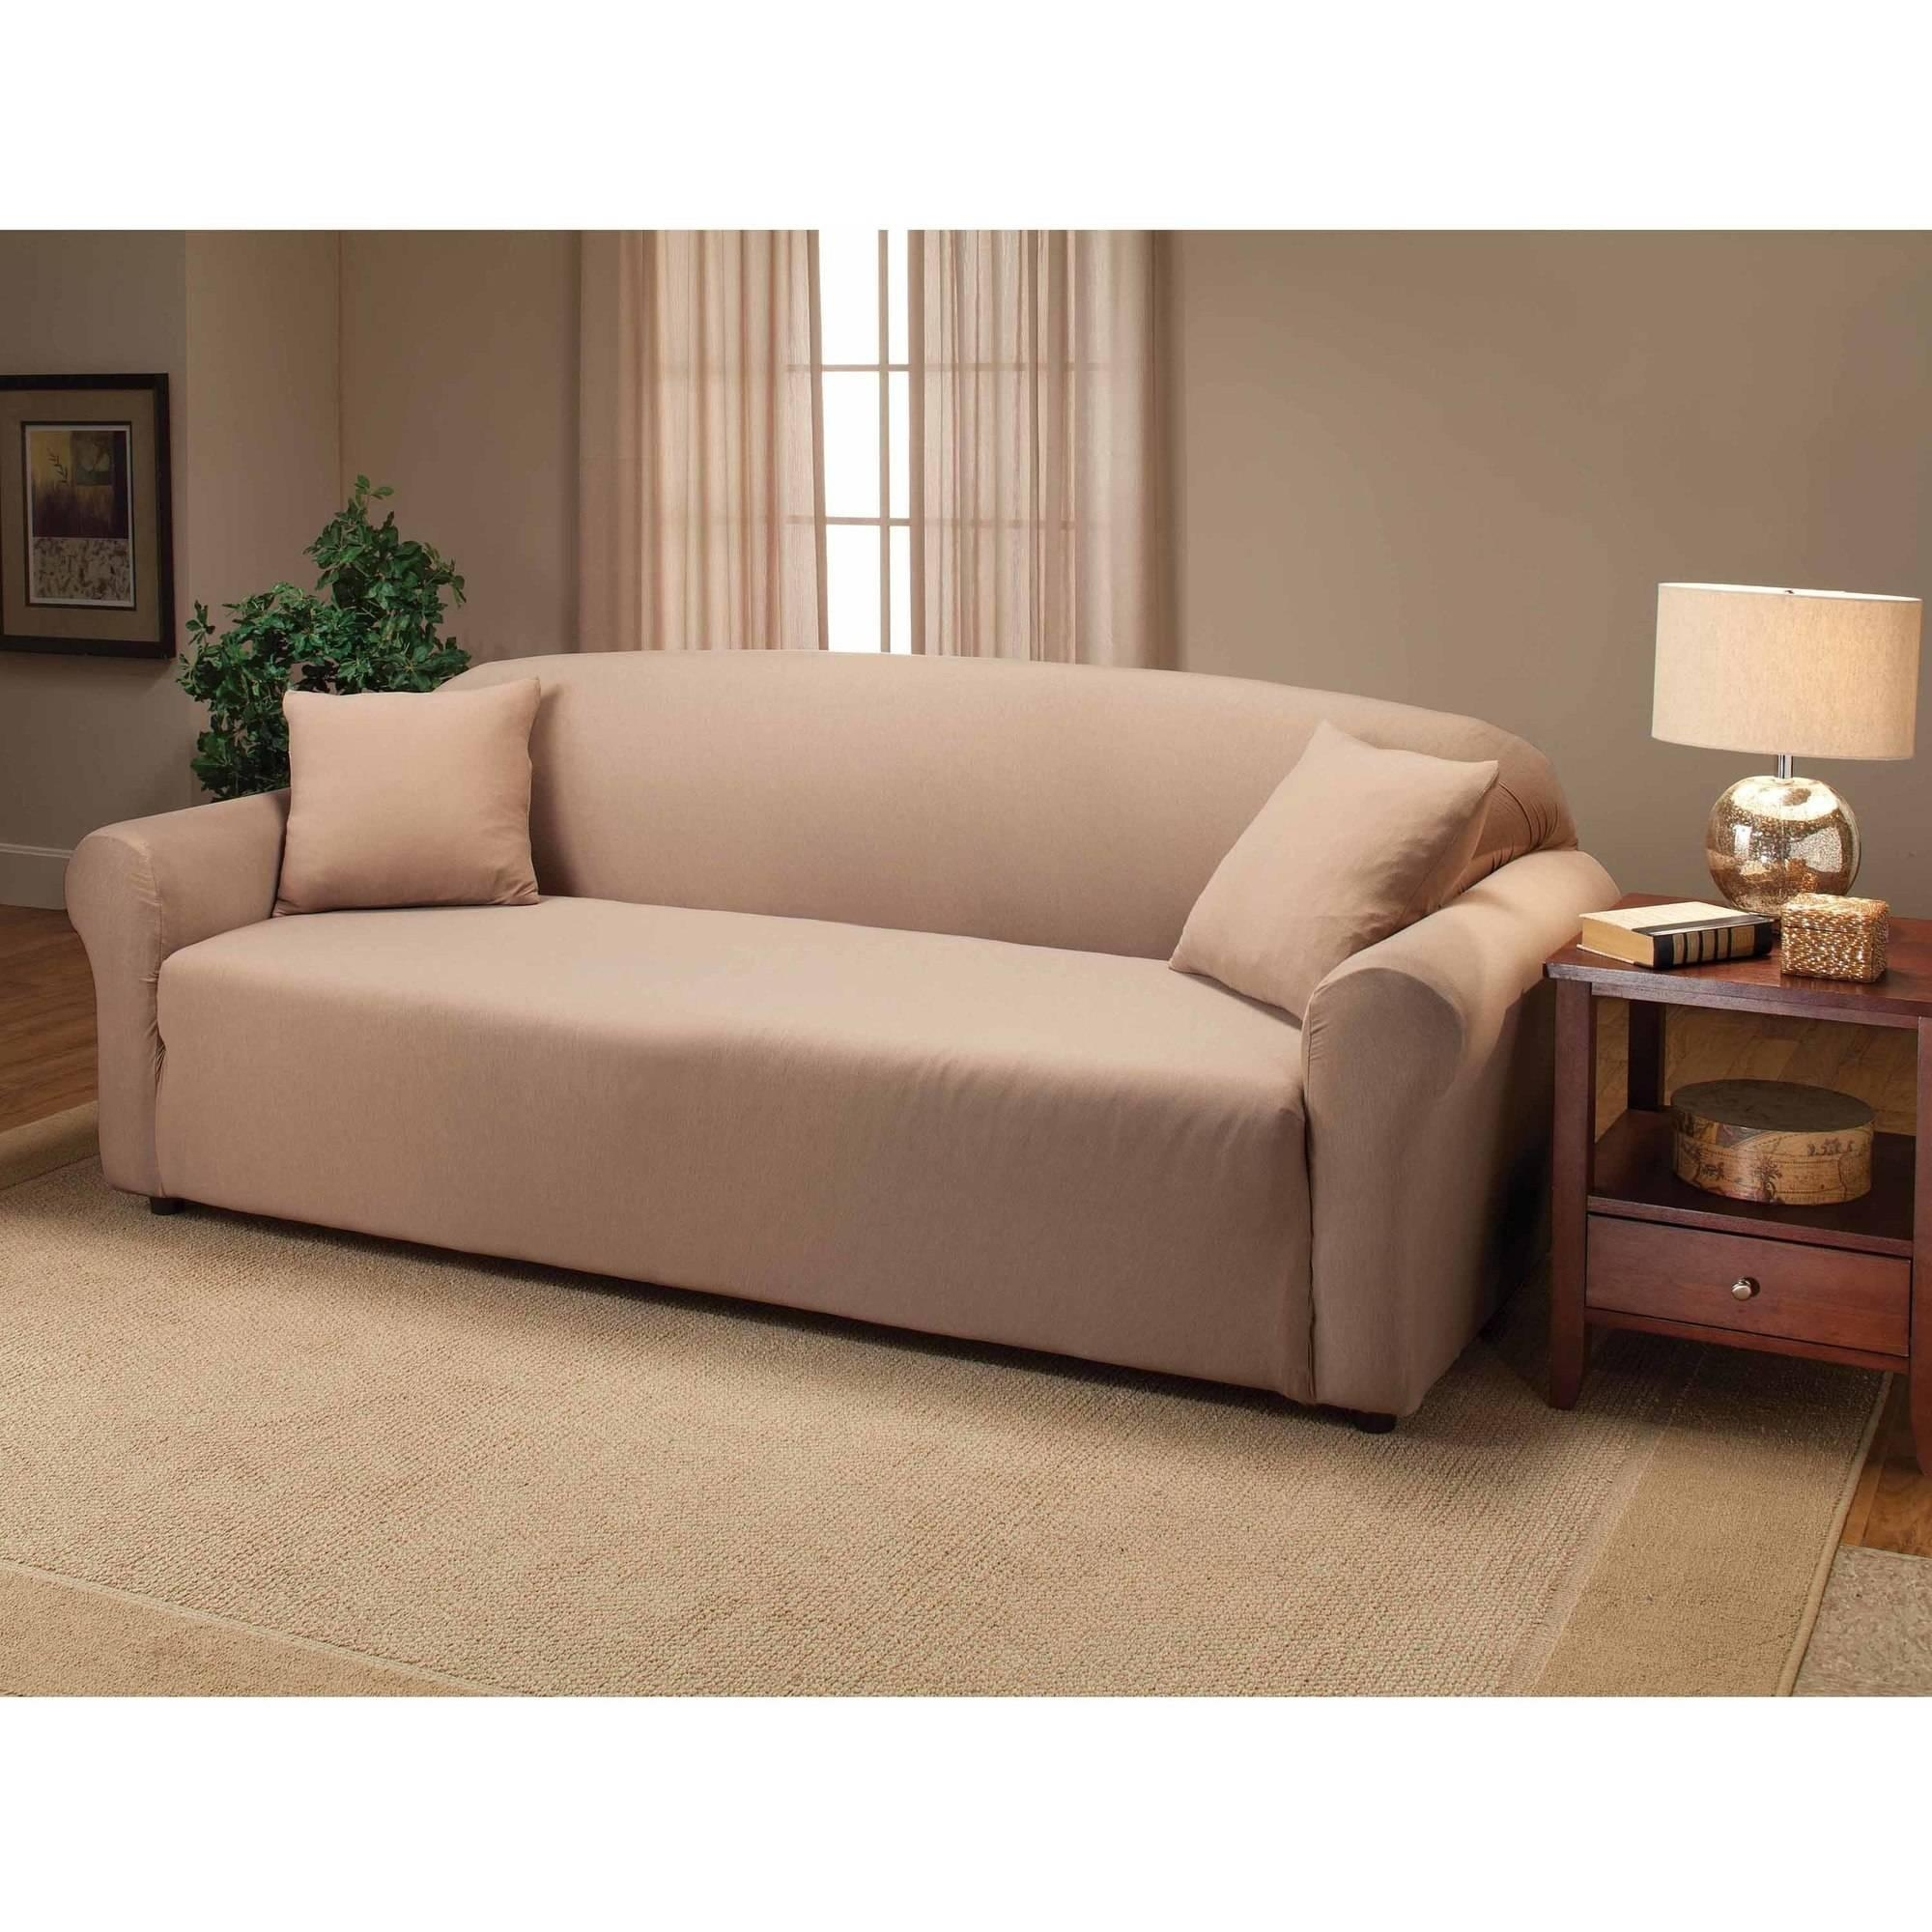 Jersey Stretch Sofa Slipcover - Walmart with Stretch Slipcovers For Sofas